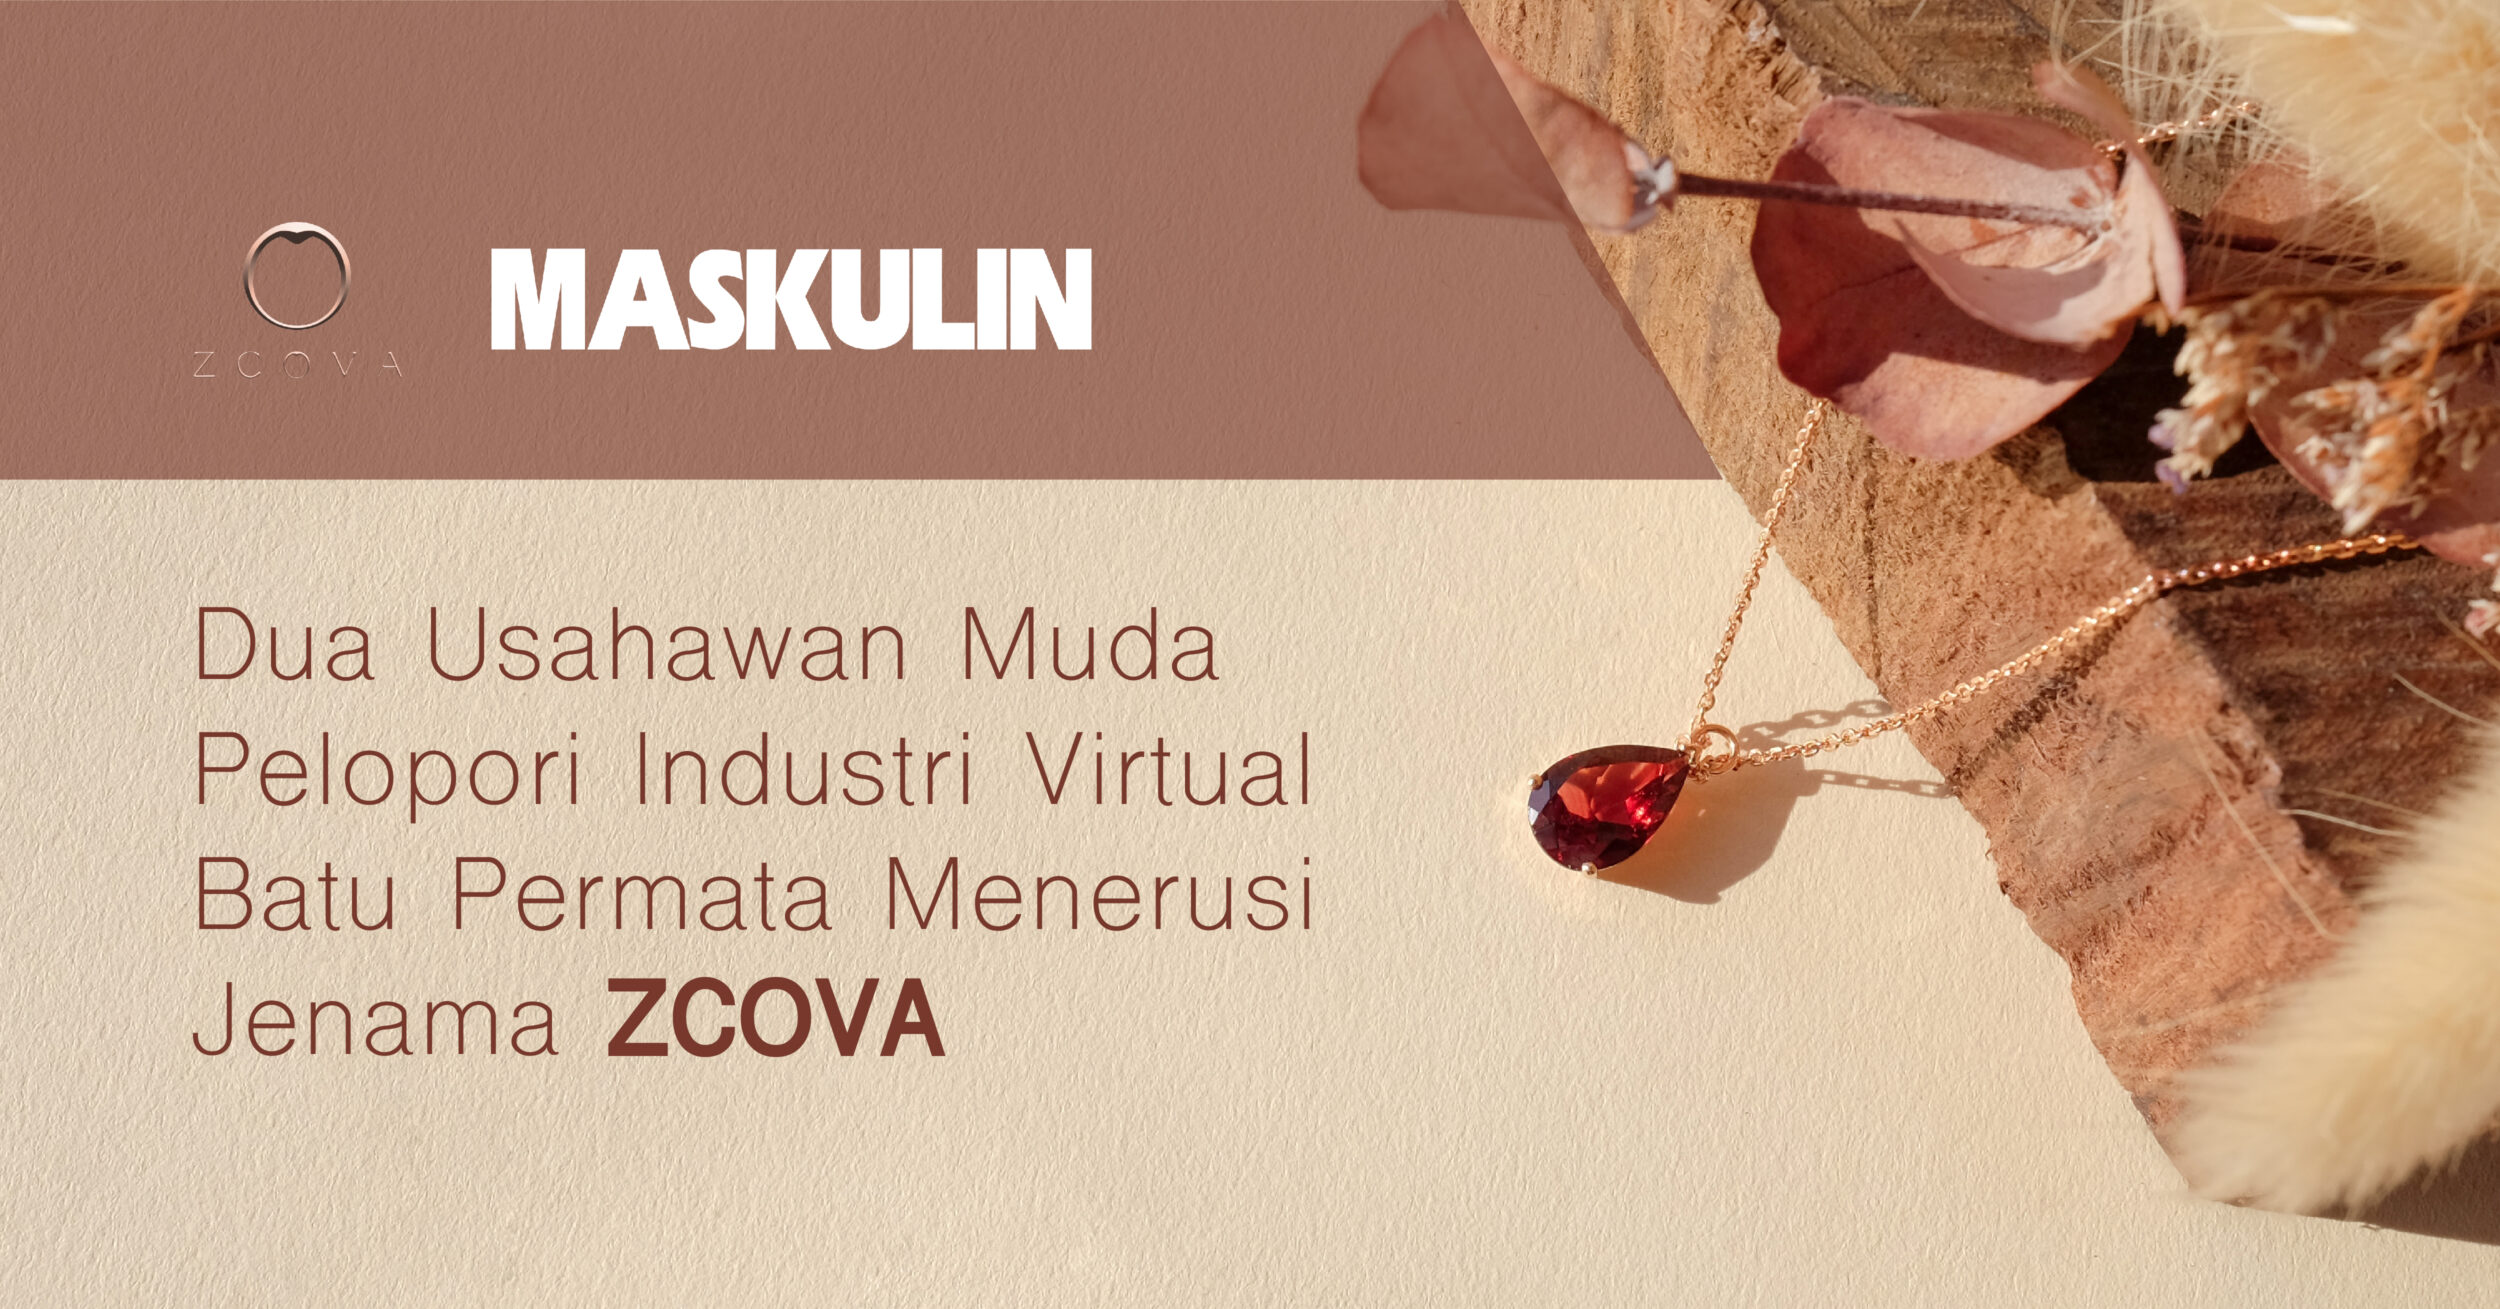 Zcova in Maskulin